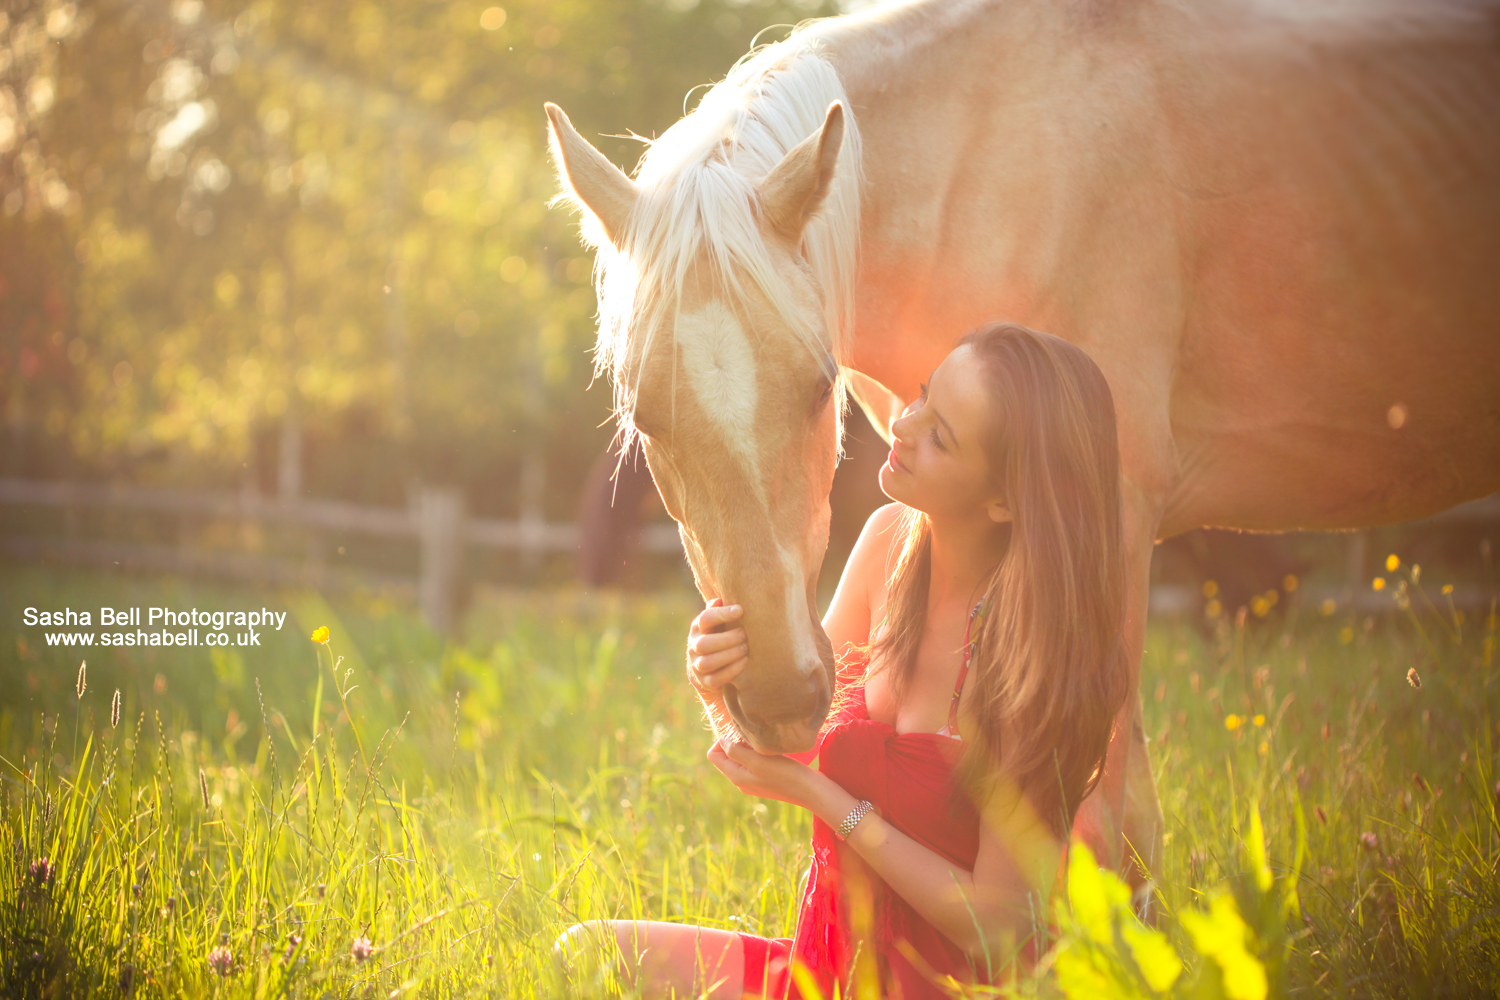 Palomino Horse with Girl